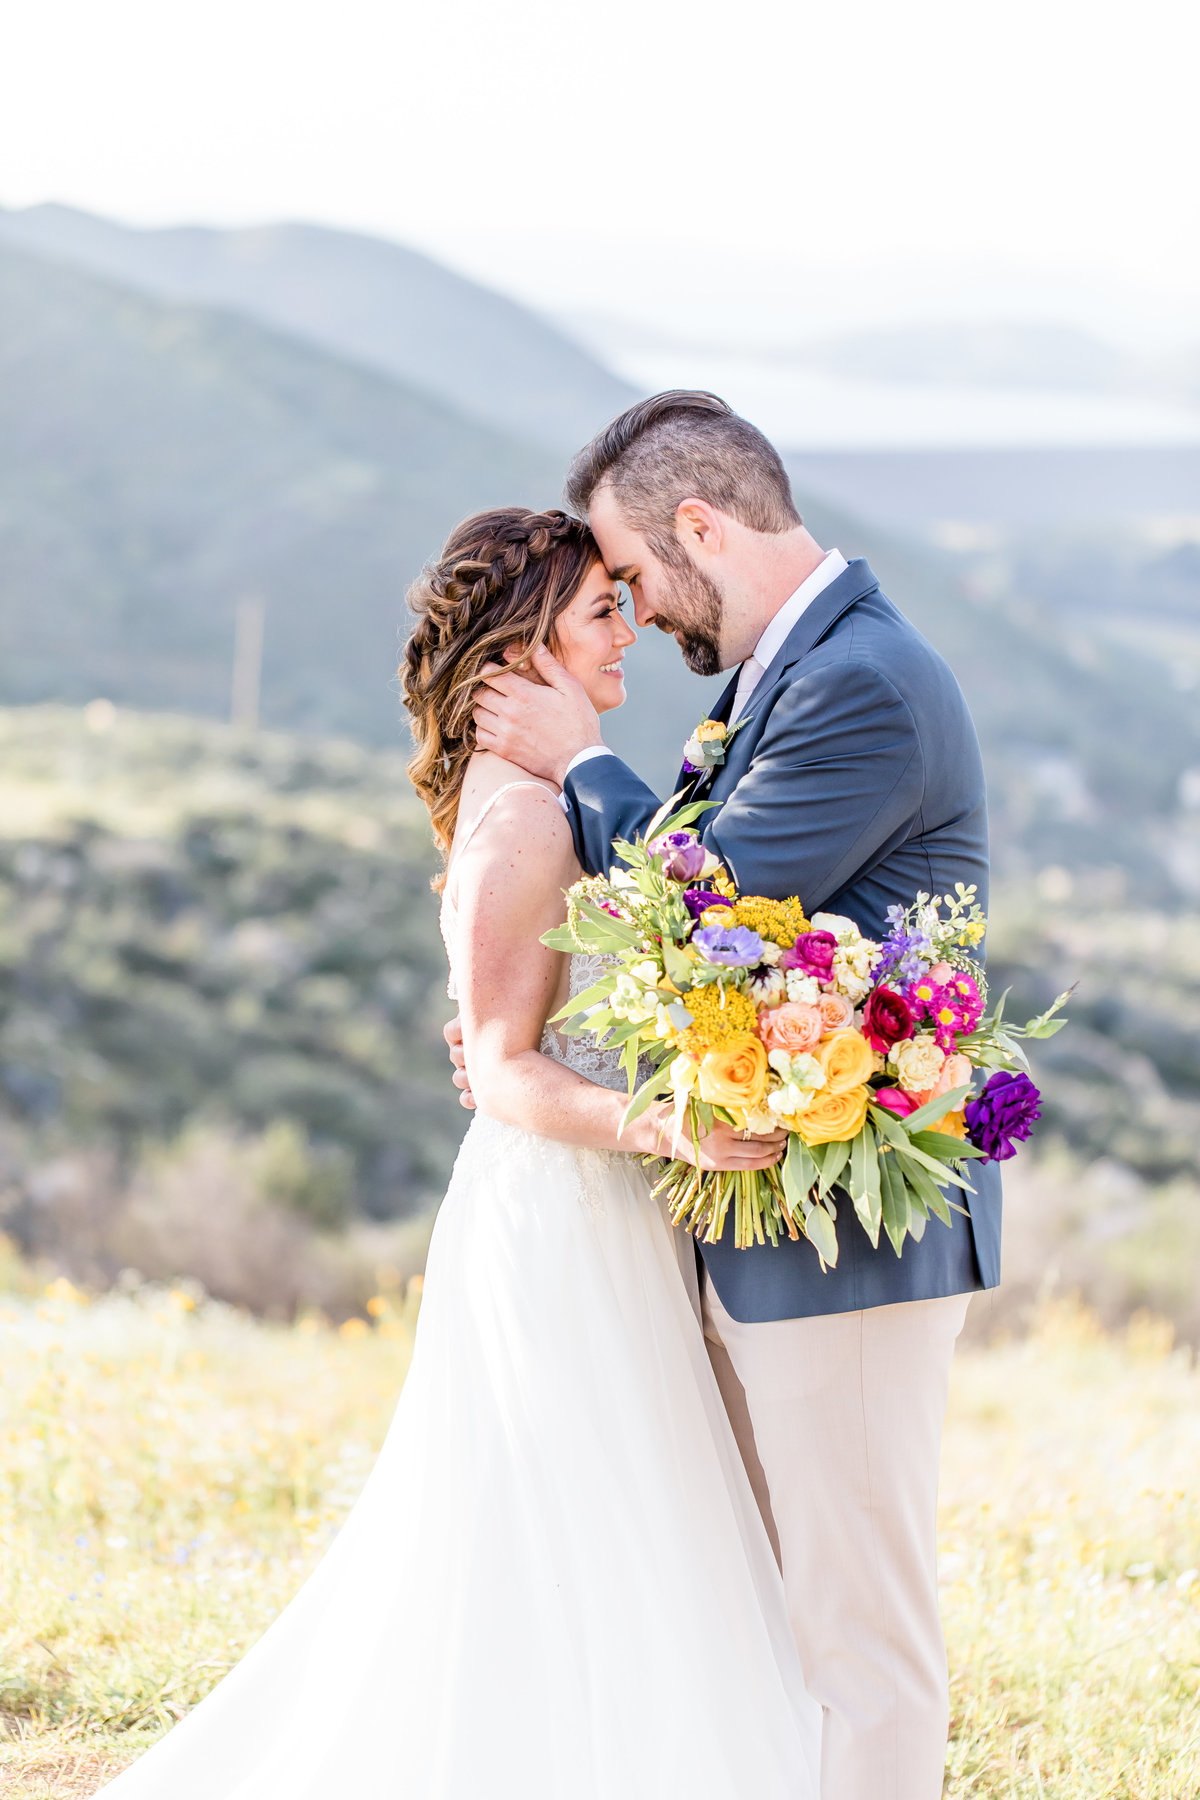 San Diego Wedding Photographer - Camila Margotta (9 of 15)